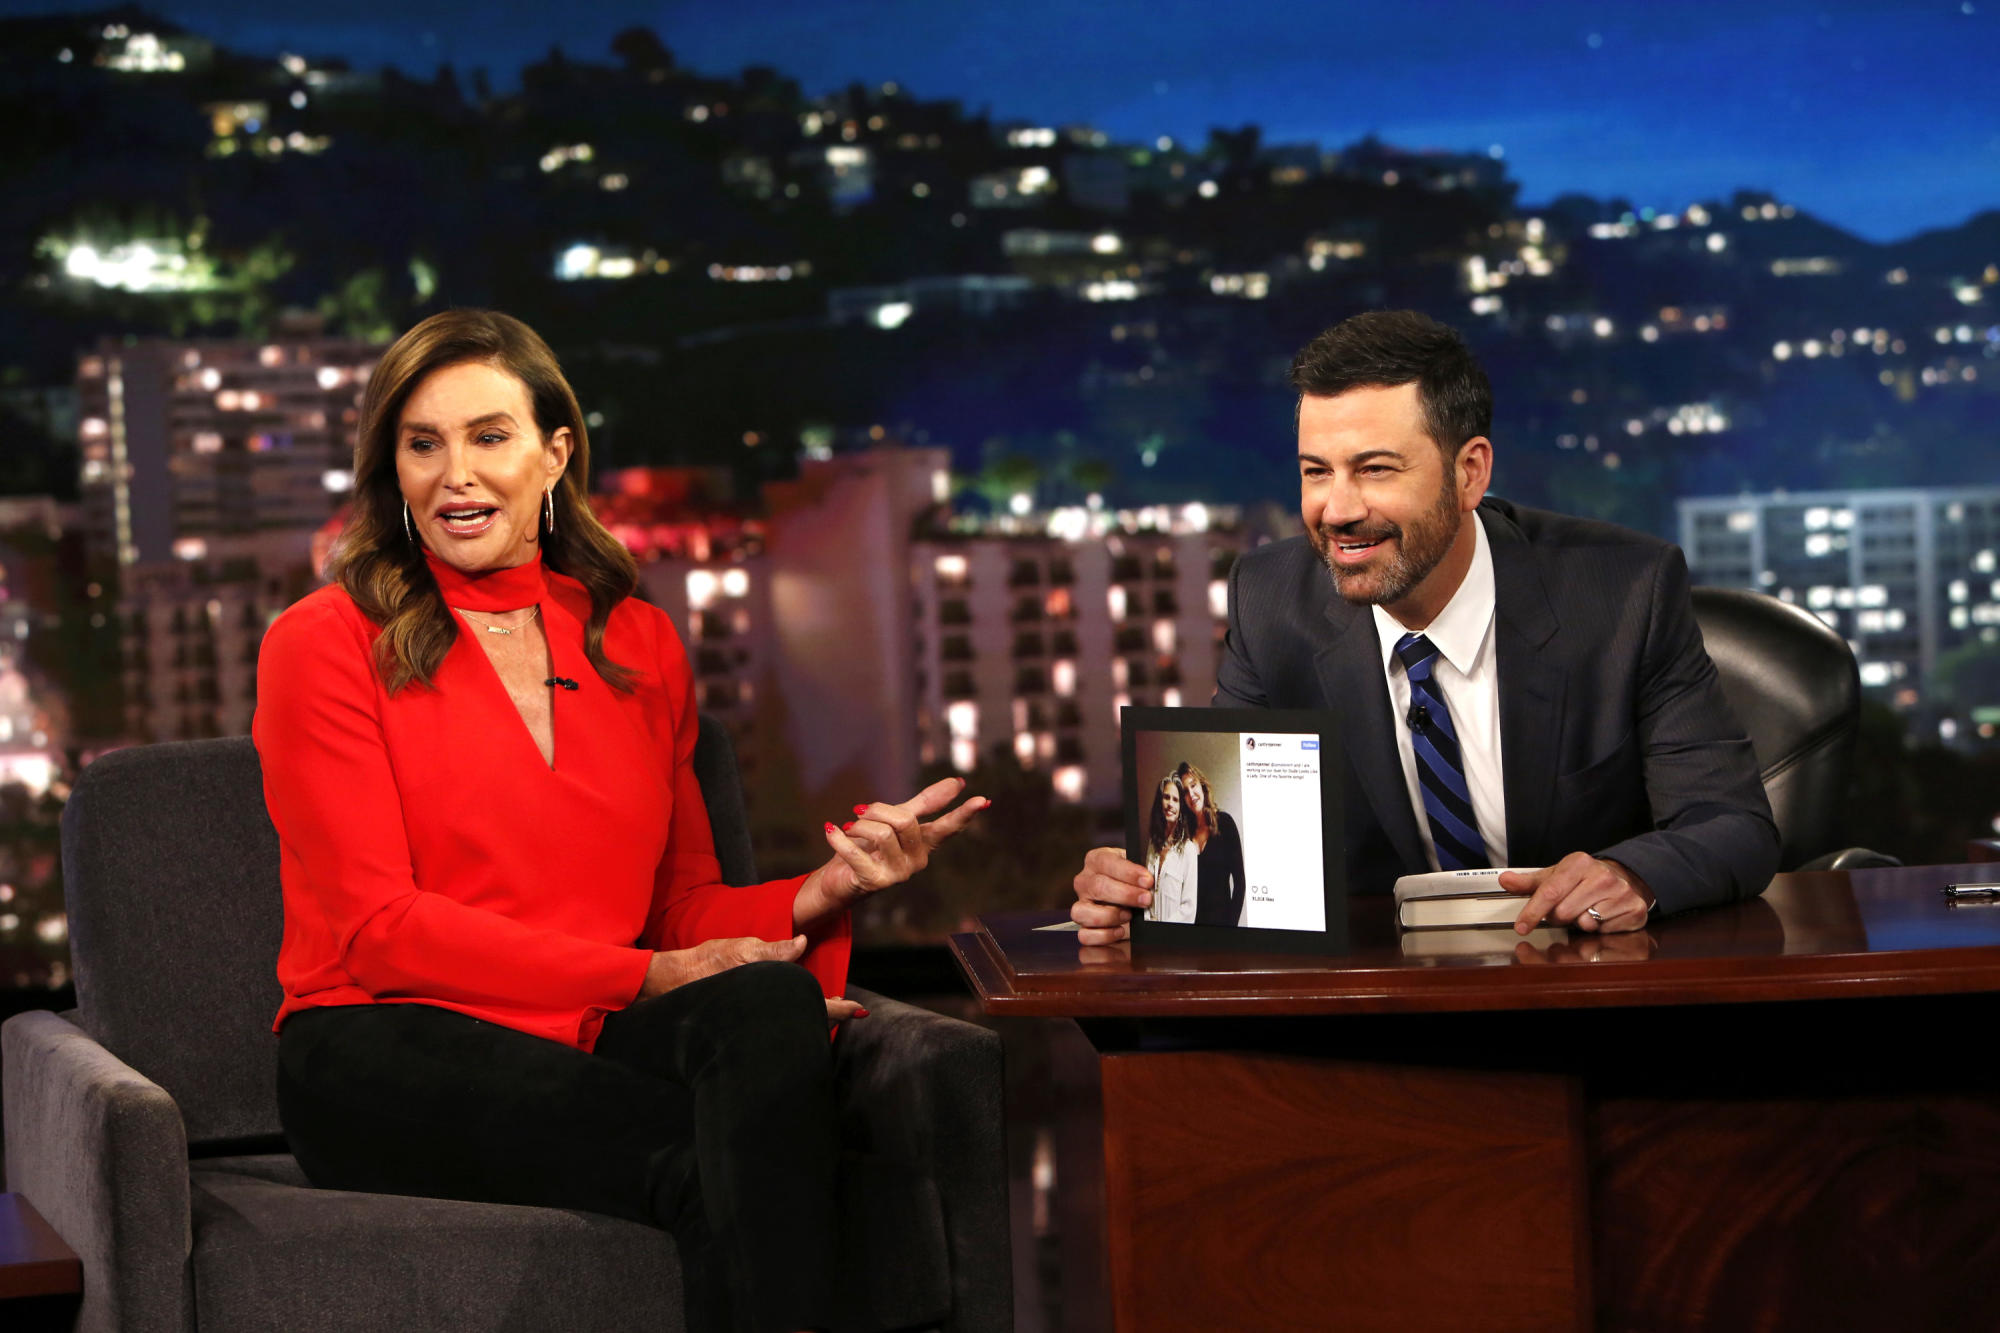 Jimmy Kimmel calls Caitlyn Jenner 'ignorant' for homeless comments in Hannity interview